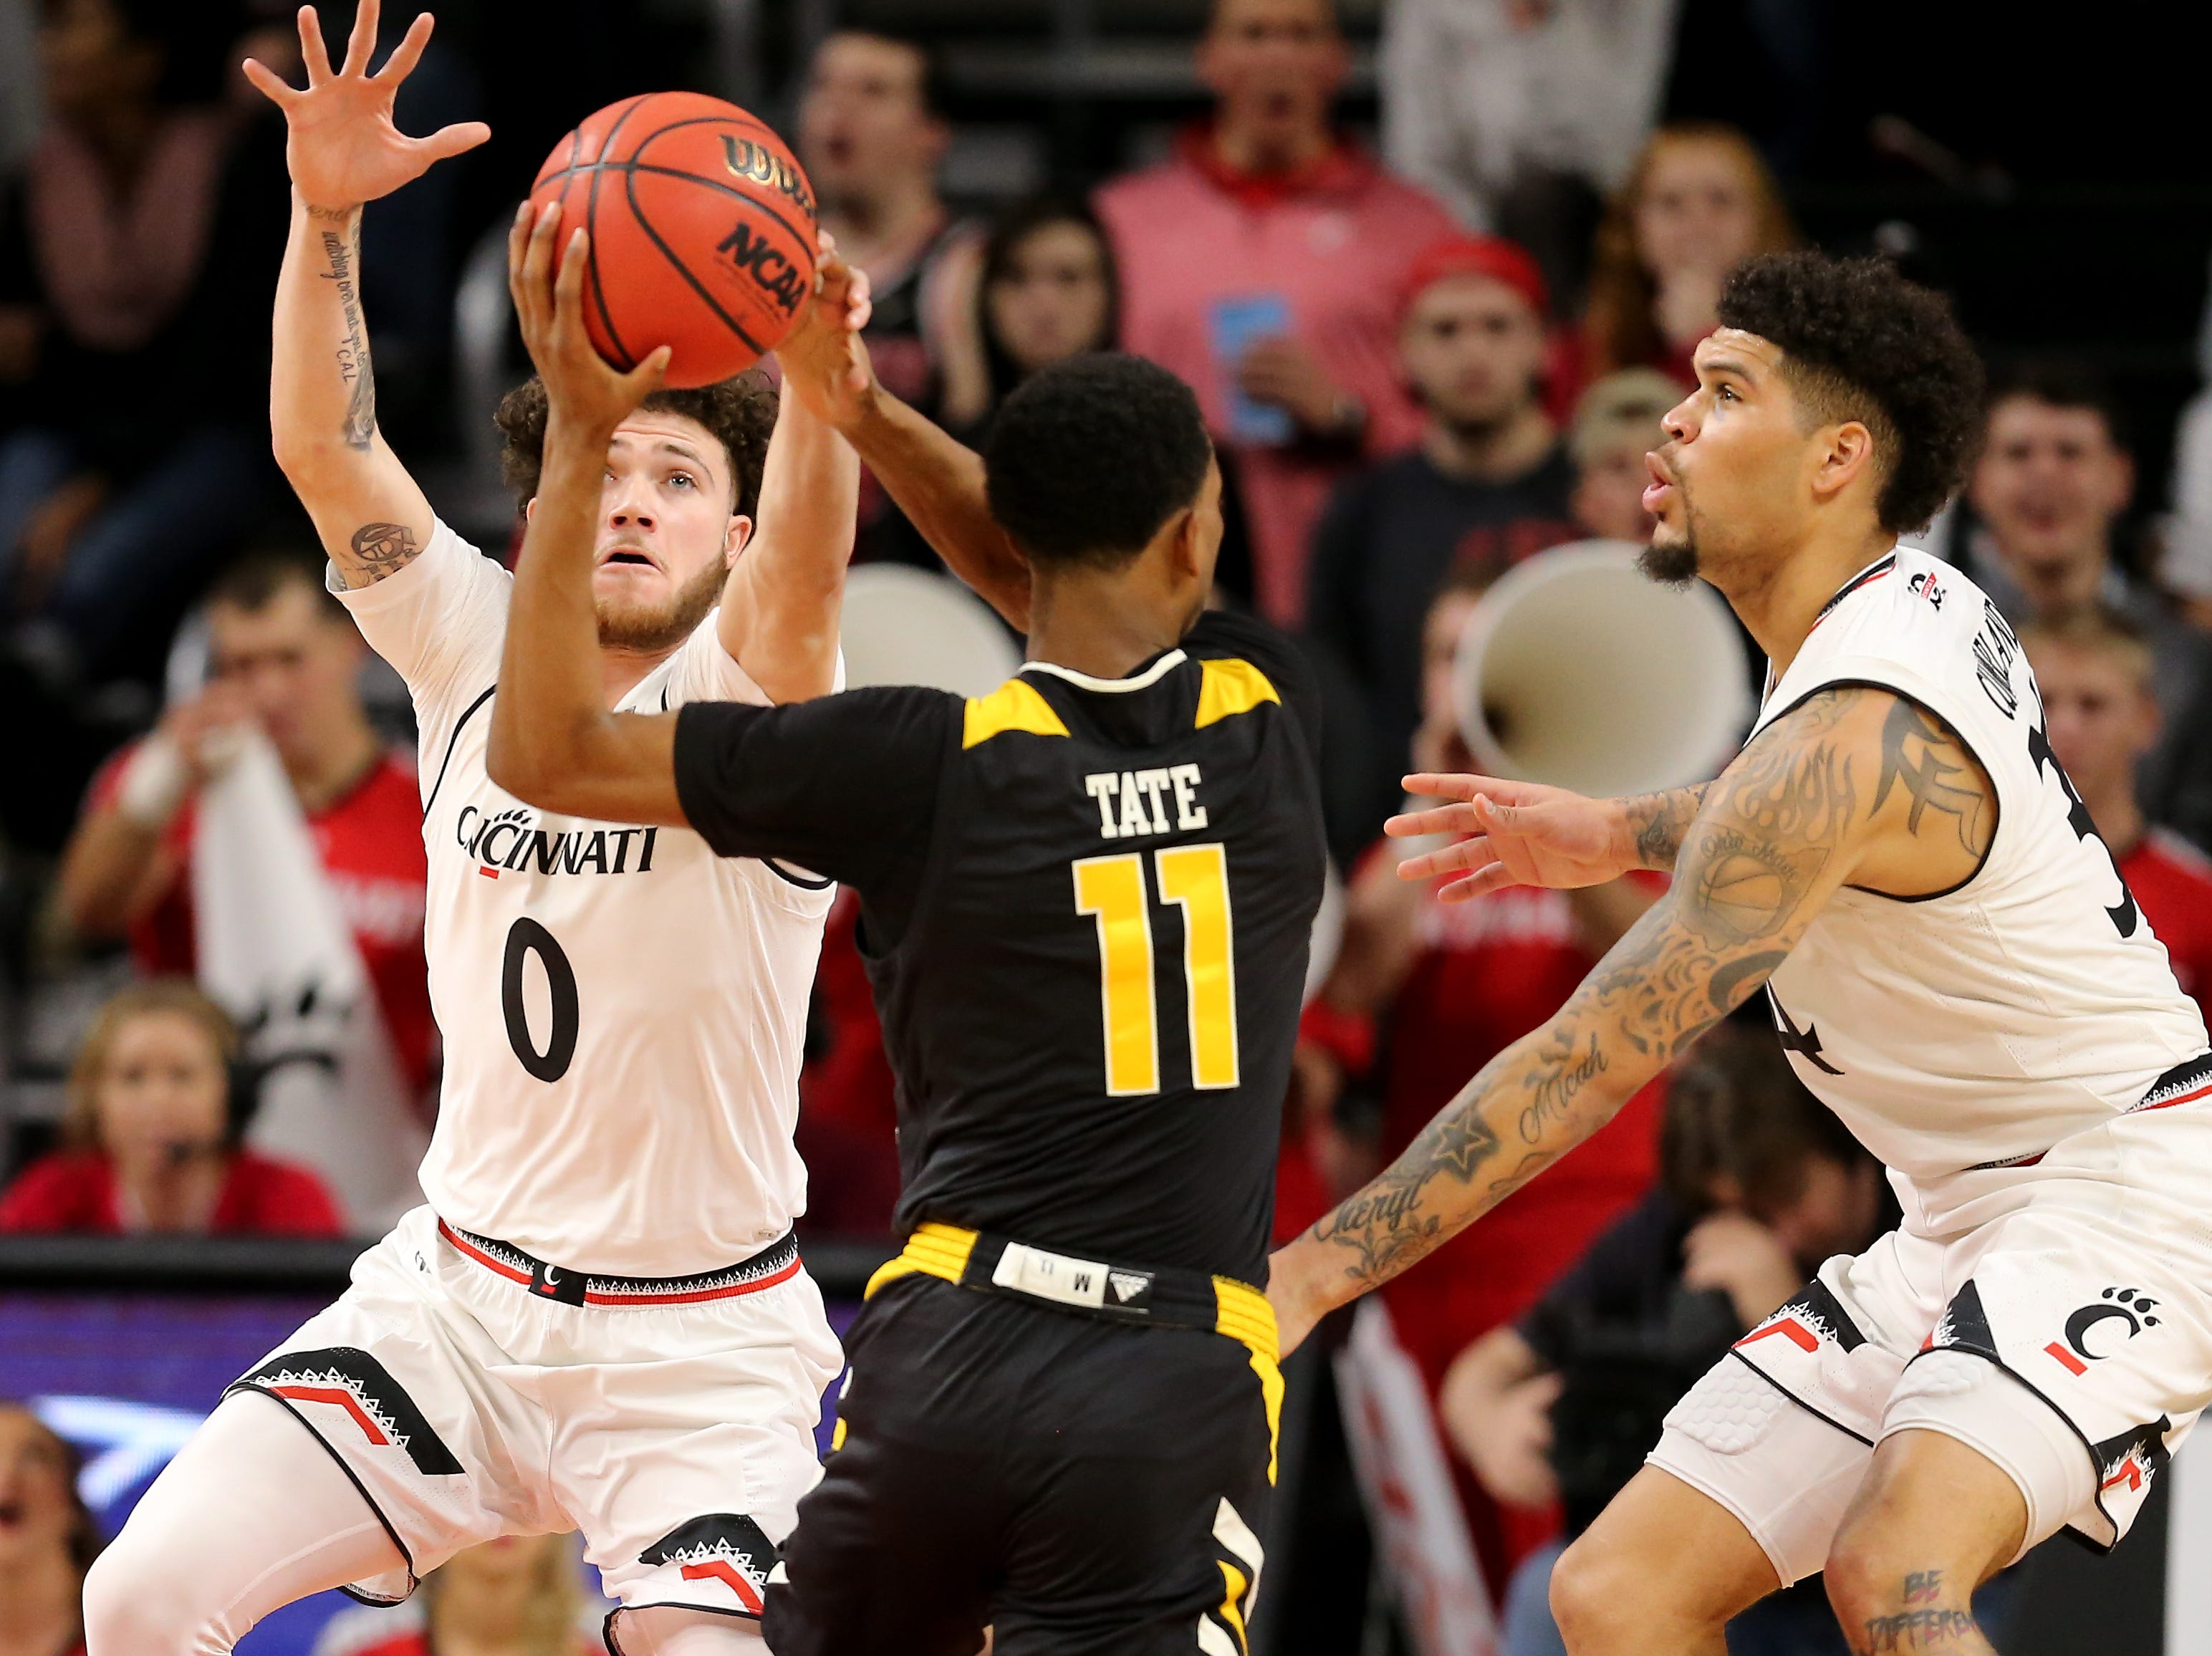 Cincinnati Bearcats guard Logan Johnson (0) eyes the basketball as Northern Kentucky Norse guard Jalen Tate (11) looks to pass in the second half of an NCAA college basketball game, Tuesday, Dec. 4, 2018, at Fifth Third Arena in Cincinnati.